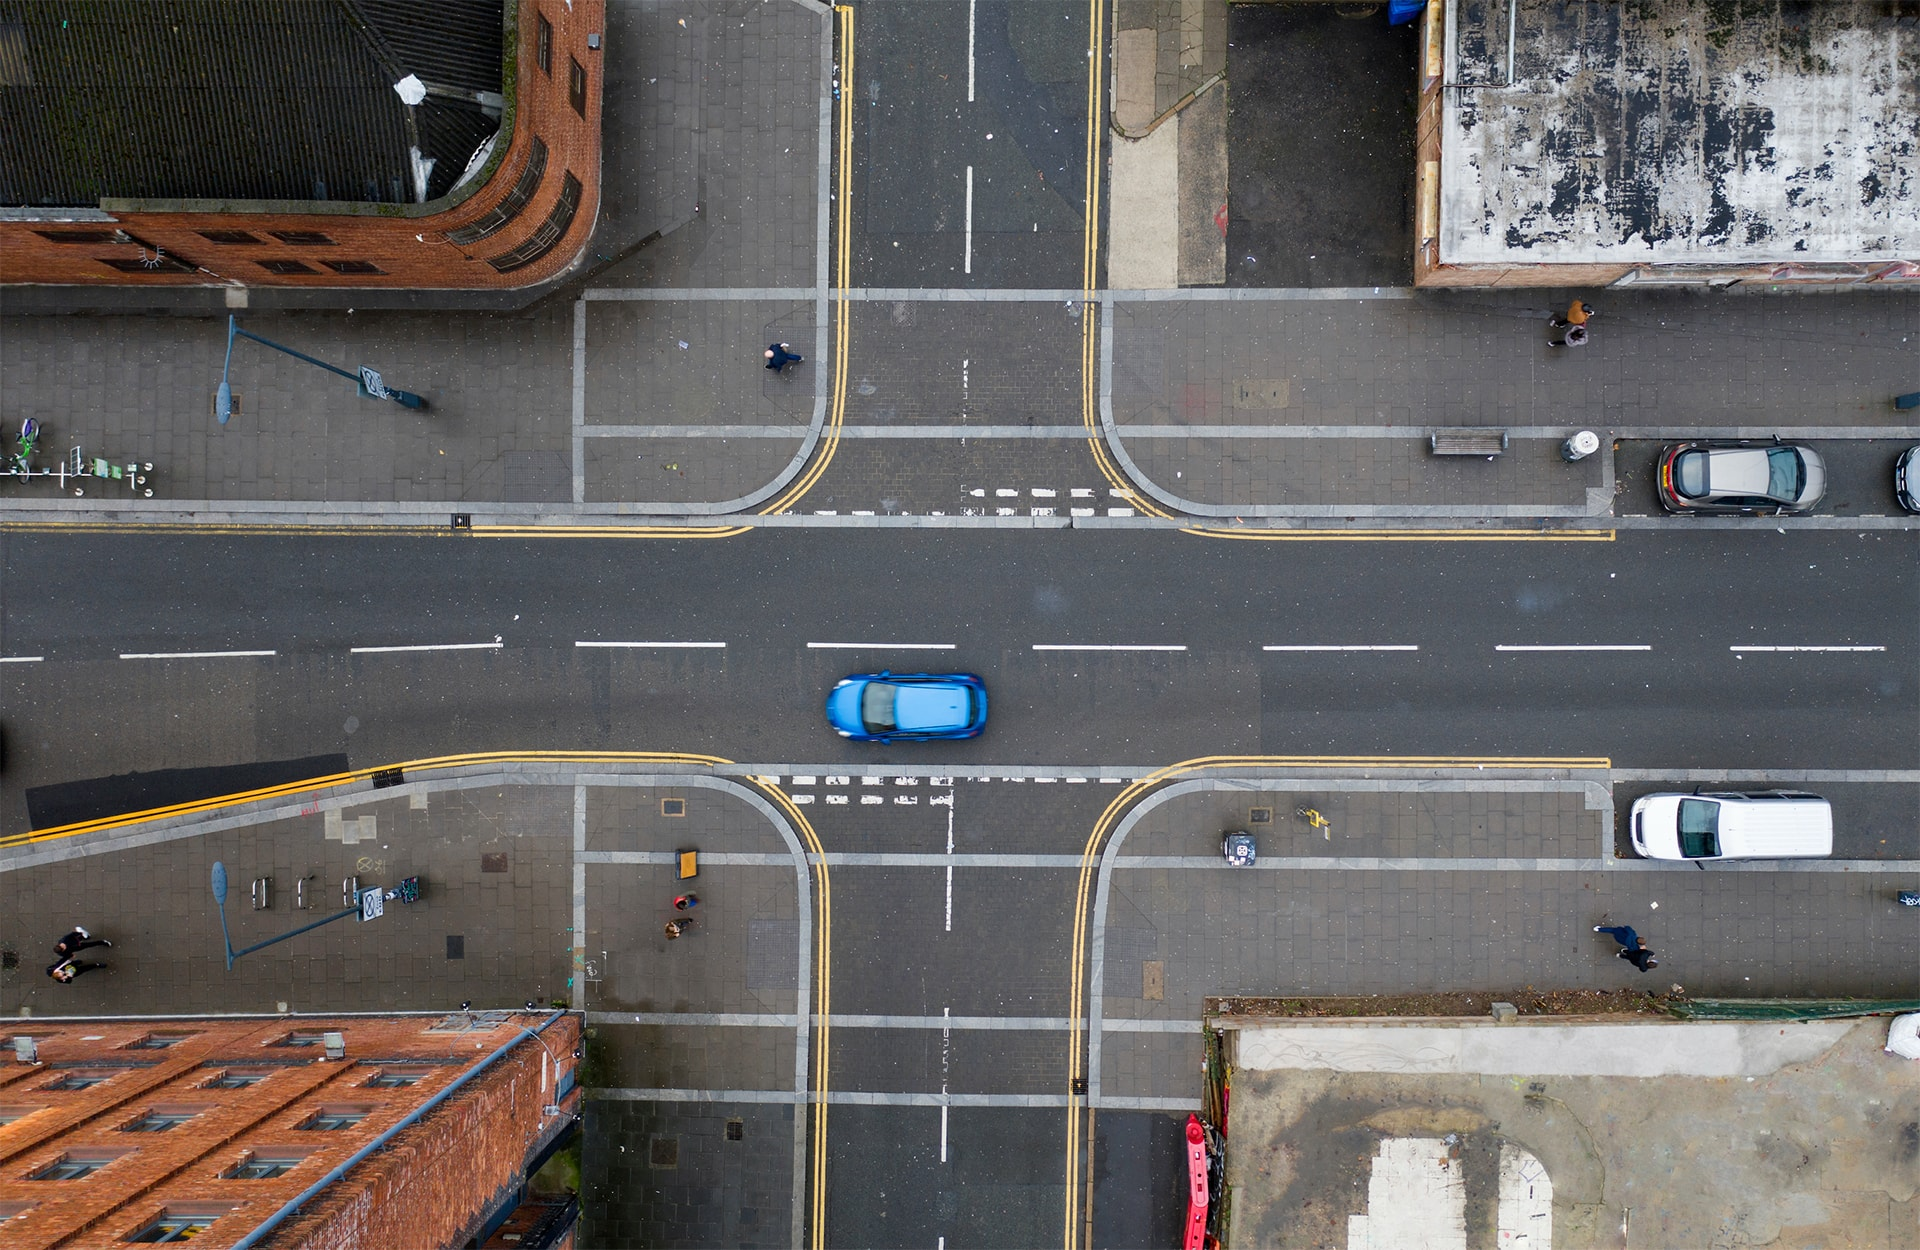 A car drives over a crossroads, the photo is taken from above